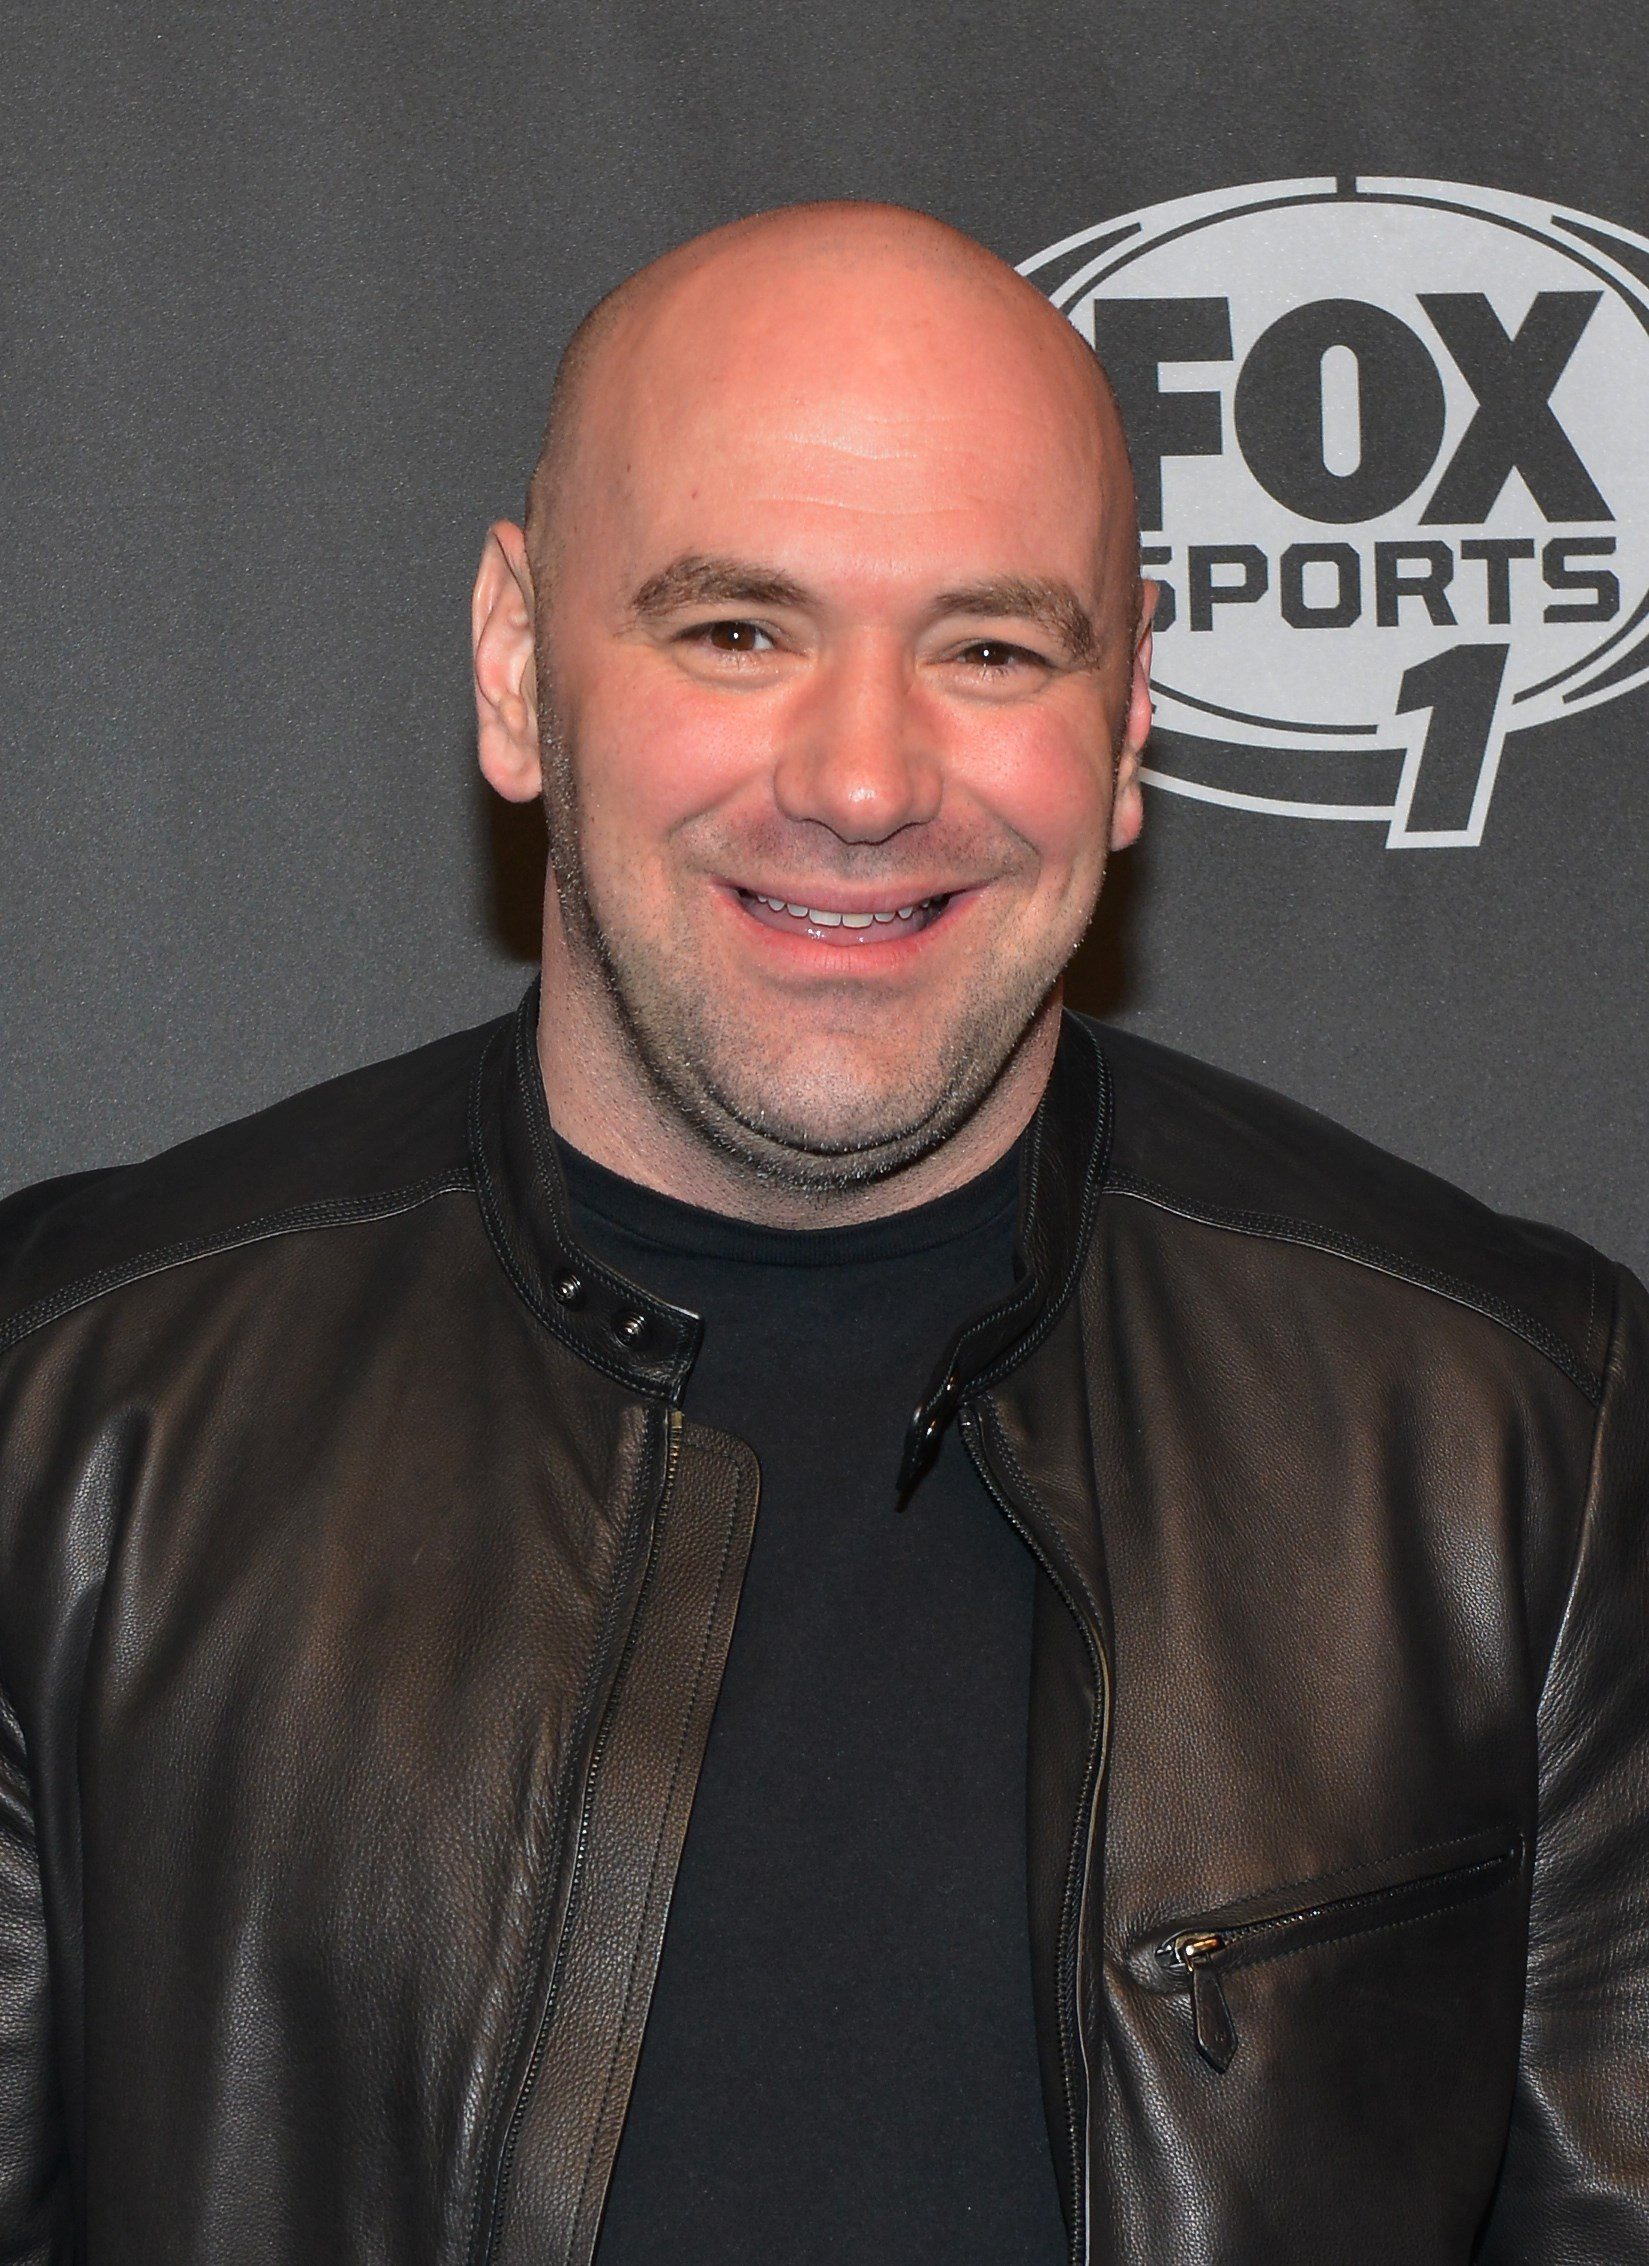 Dana White | Known people - famous people news and biographies